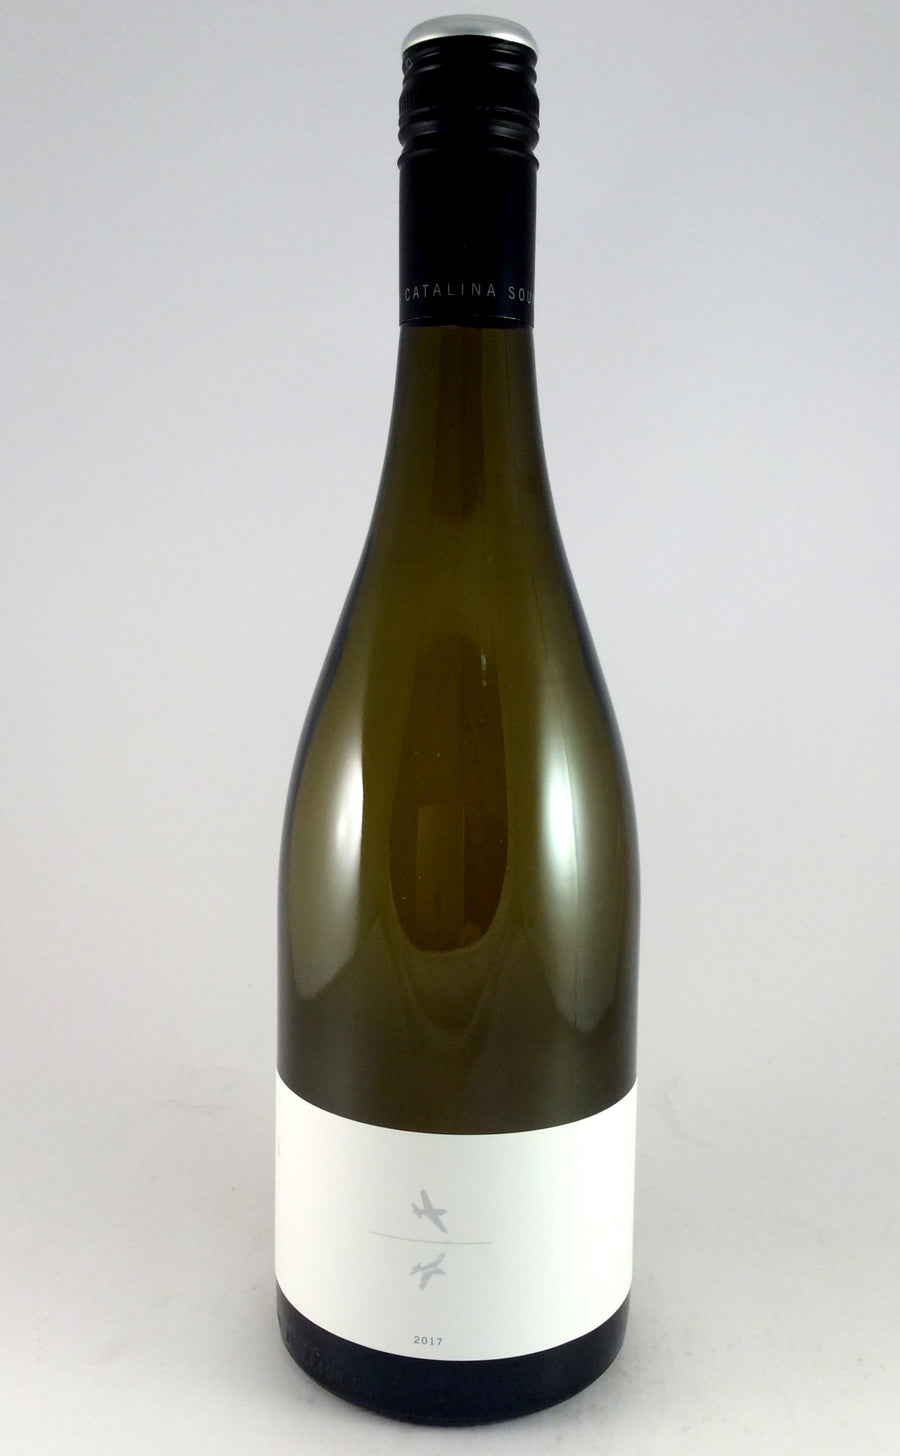 Catalina Sounds Sound of White Sauvignon Blanc - Wineseeker